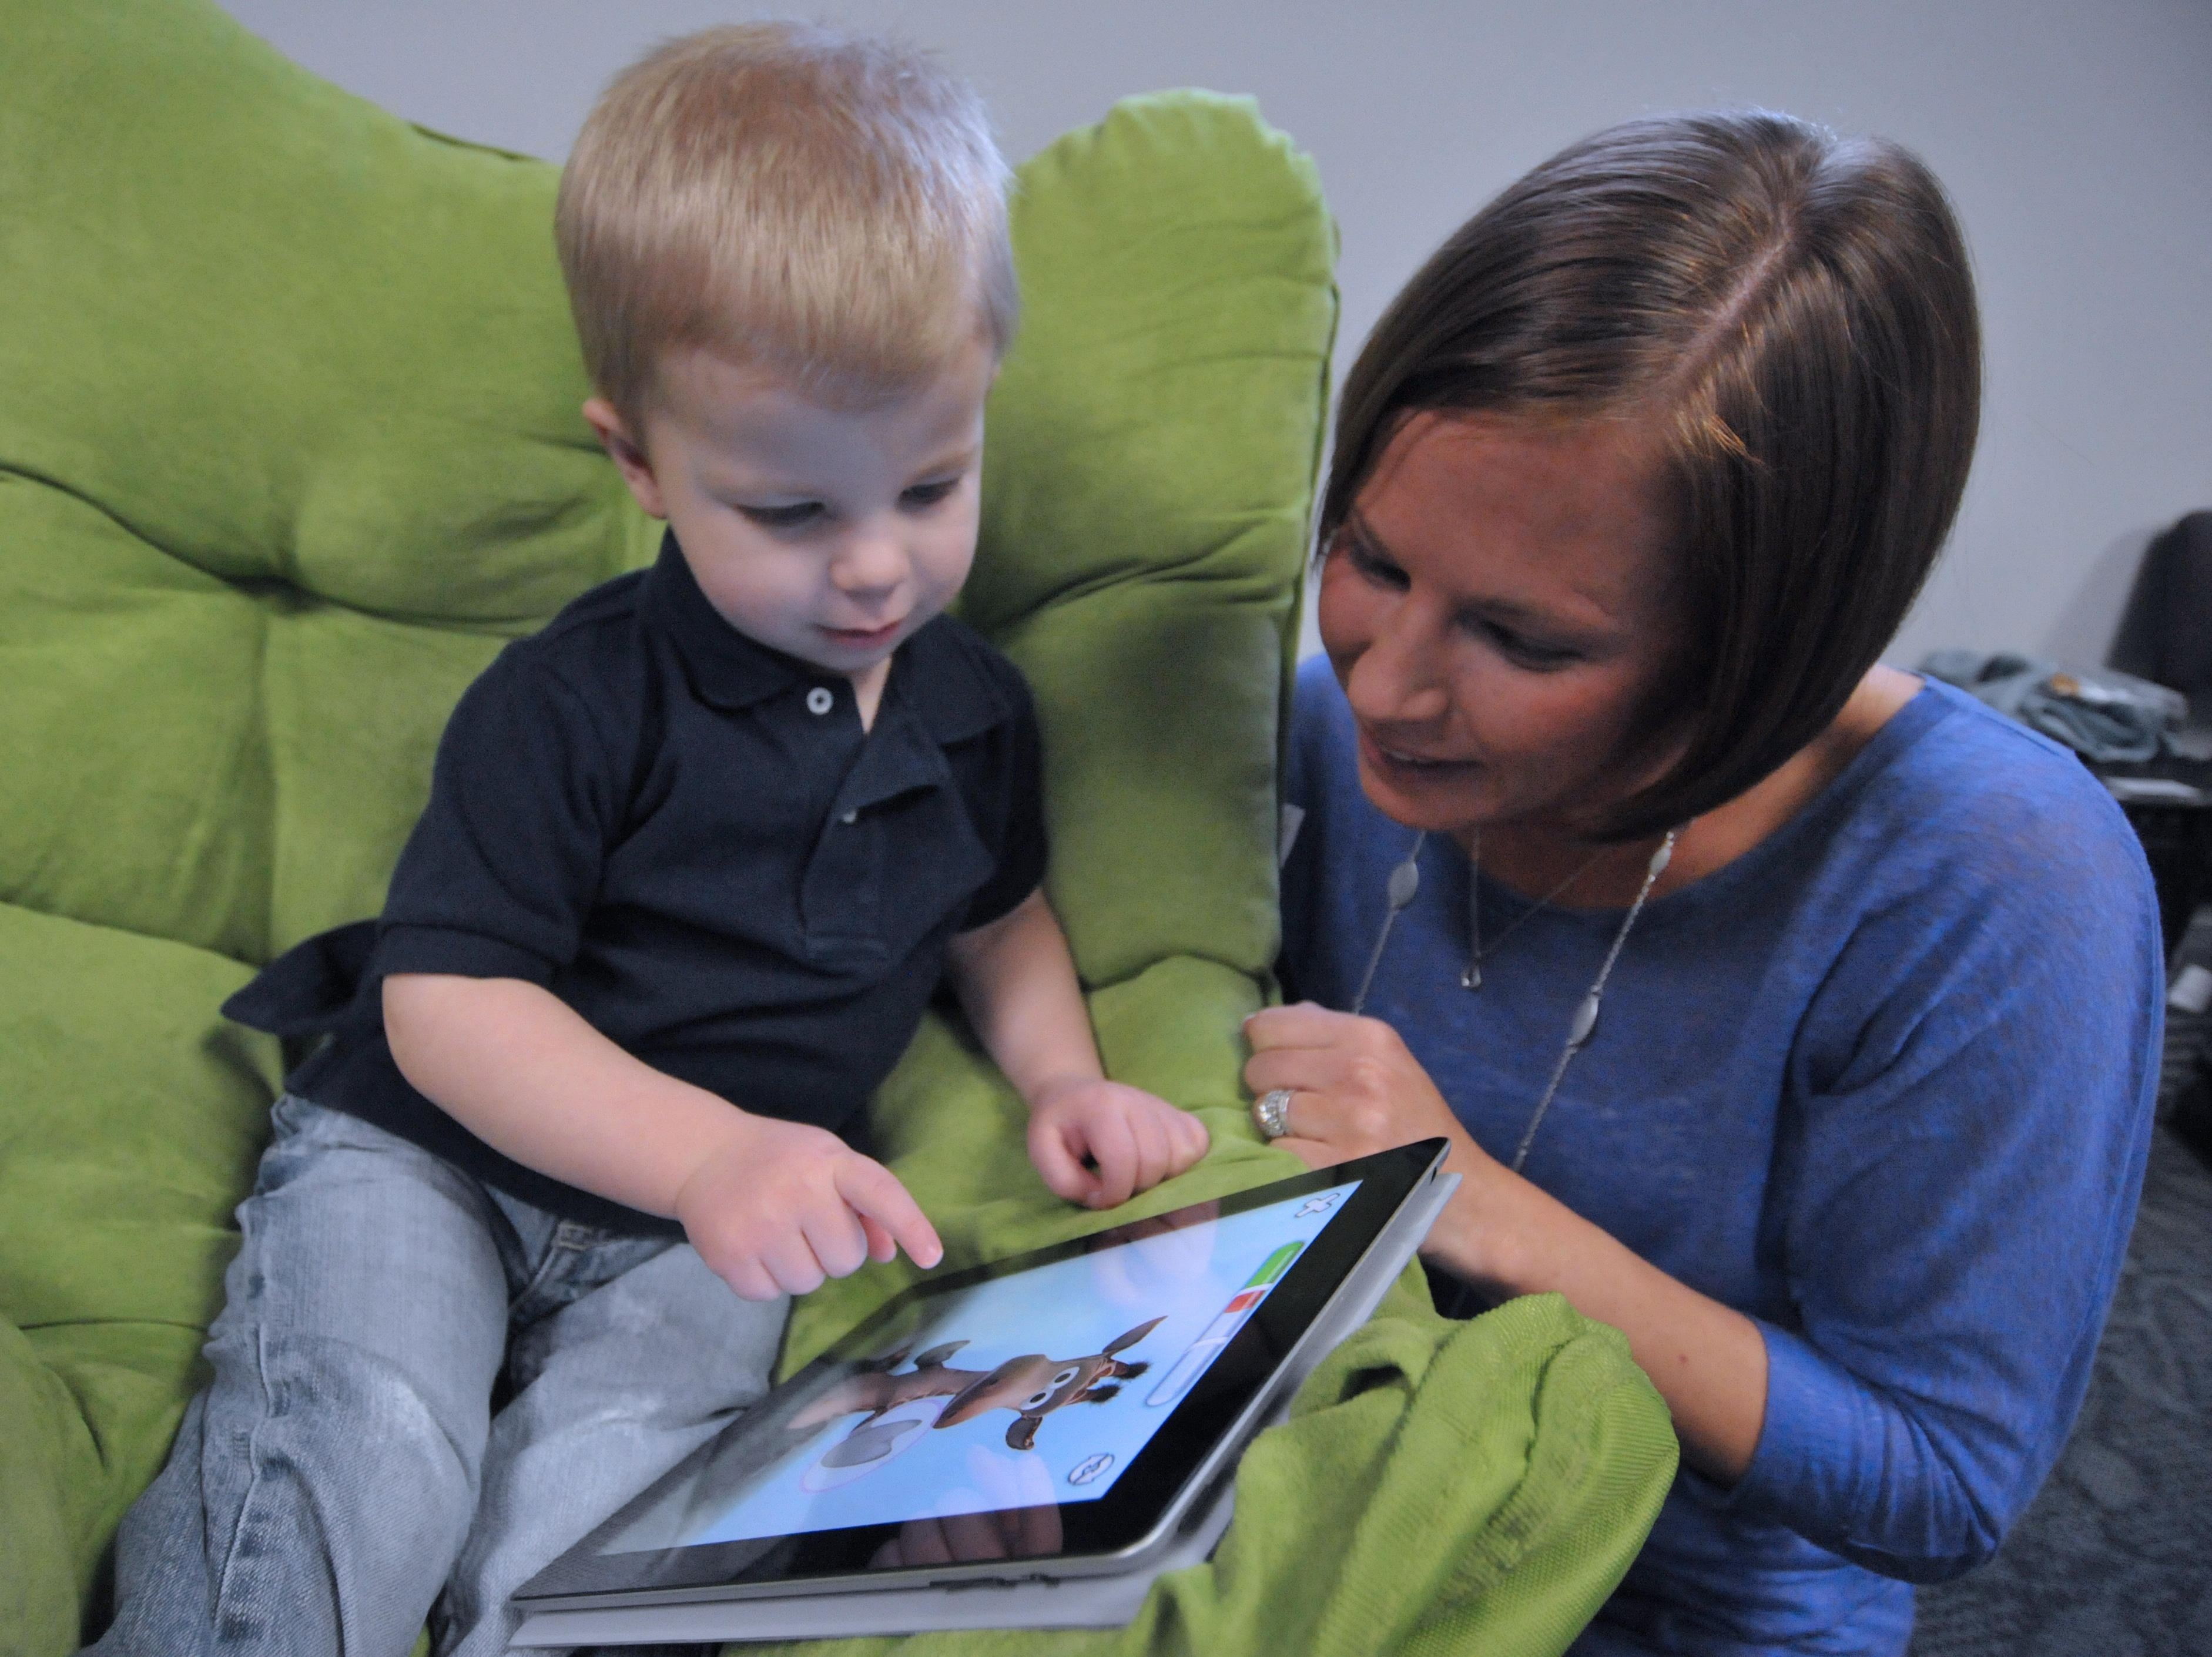 2014-11-11-Child_and_mother_with_Apple_iPad